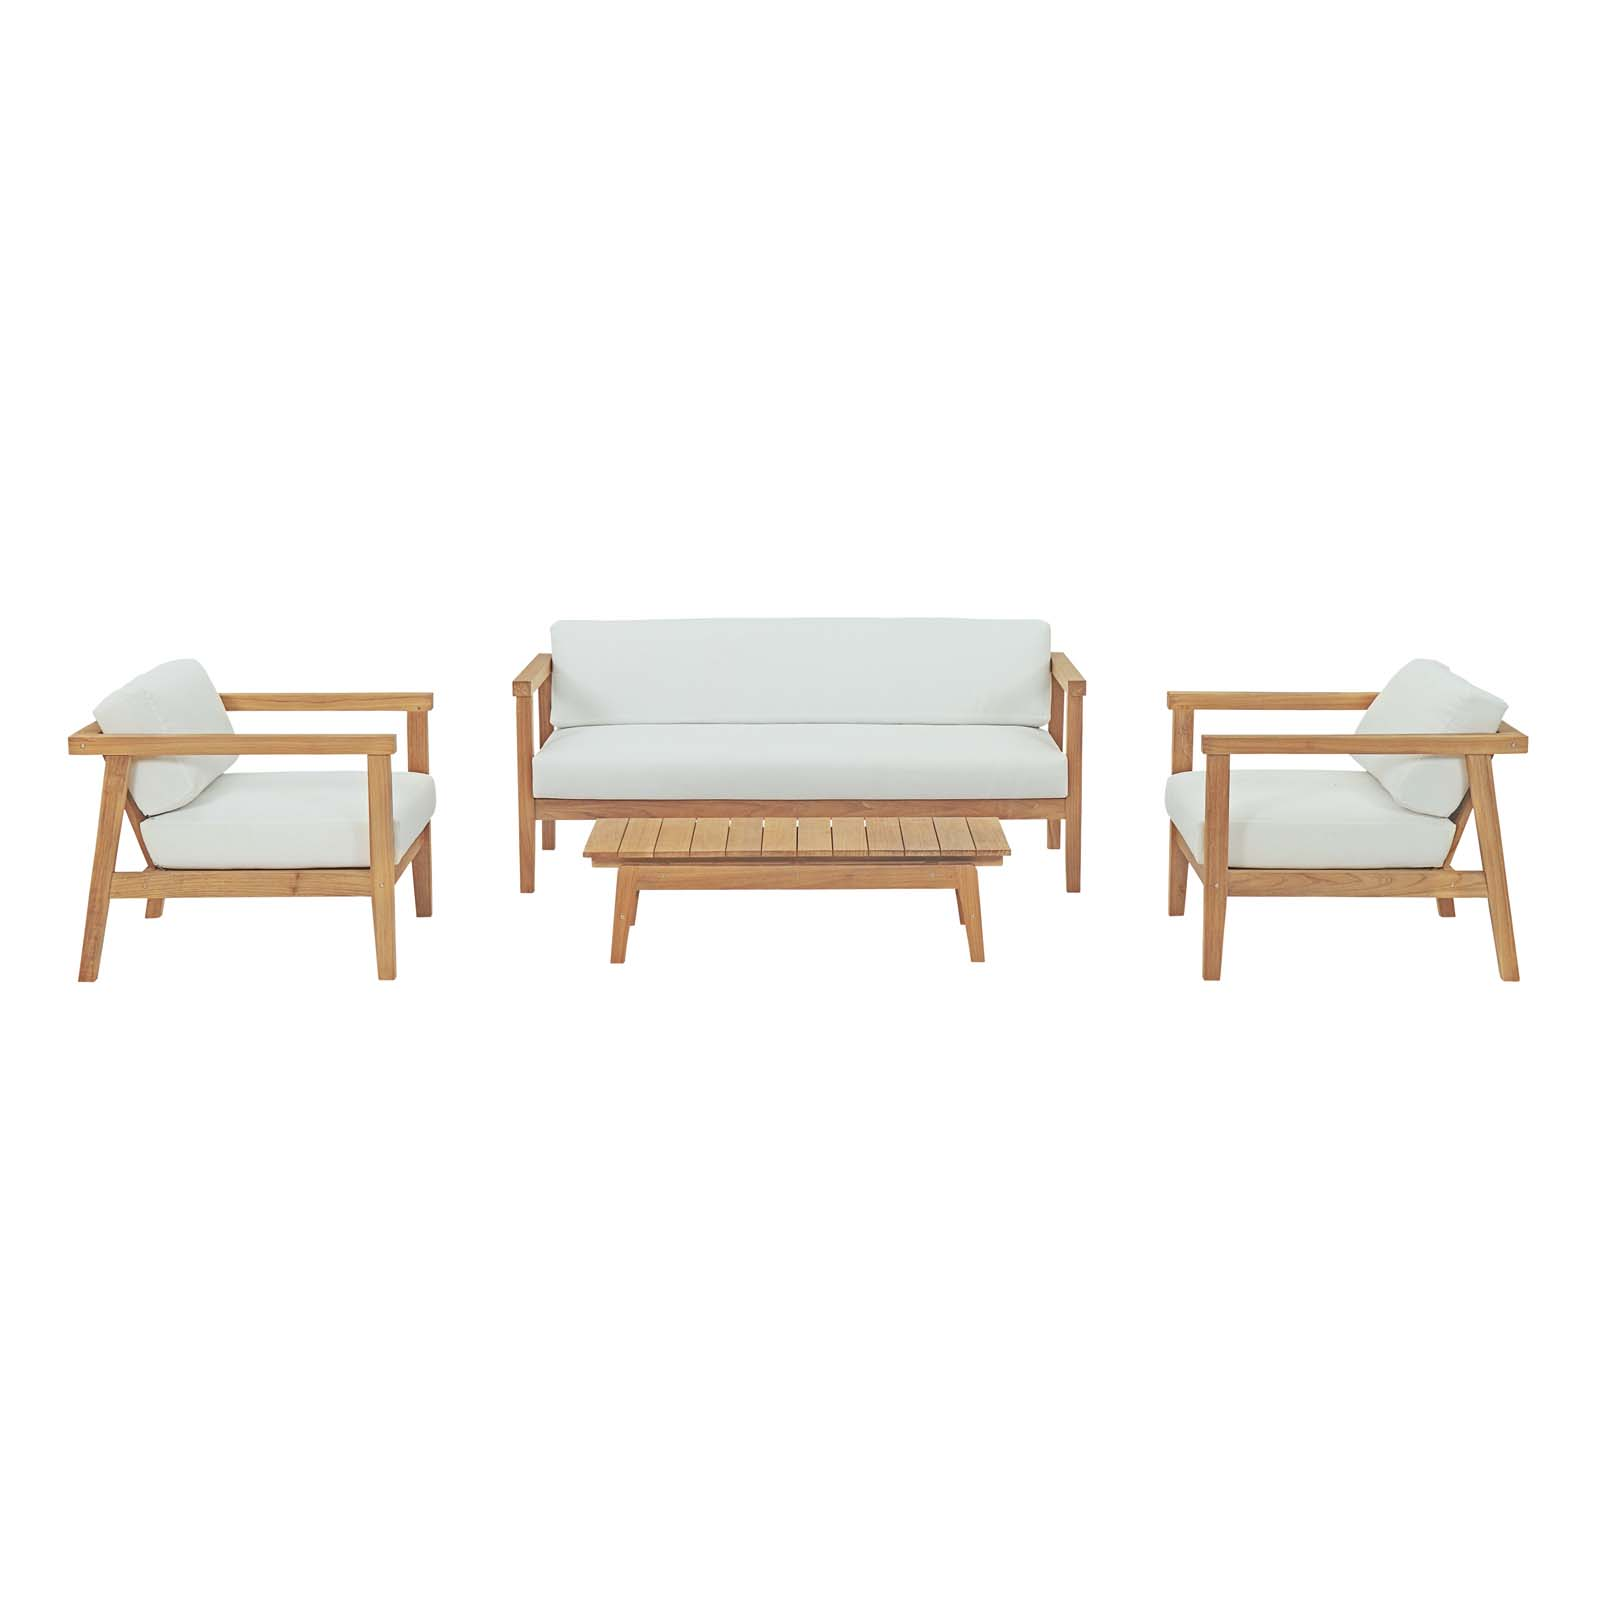 Modway Bayport 4 Piece Outdoor Patio Teak Set in Natural White